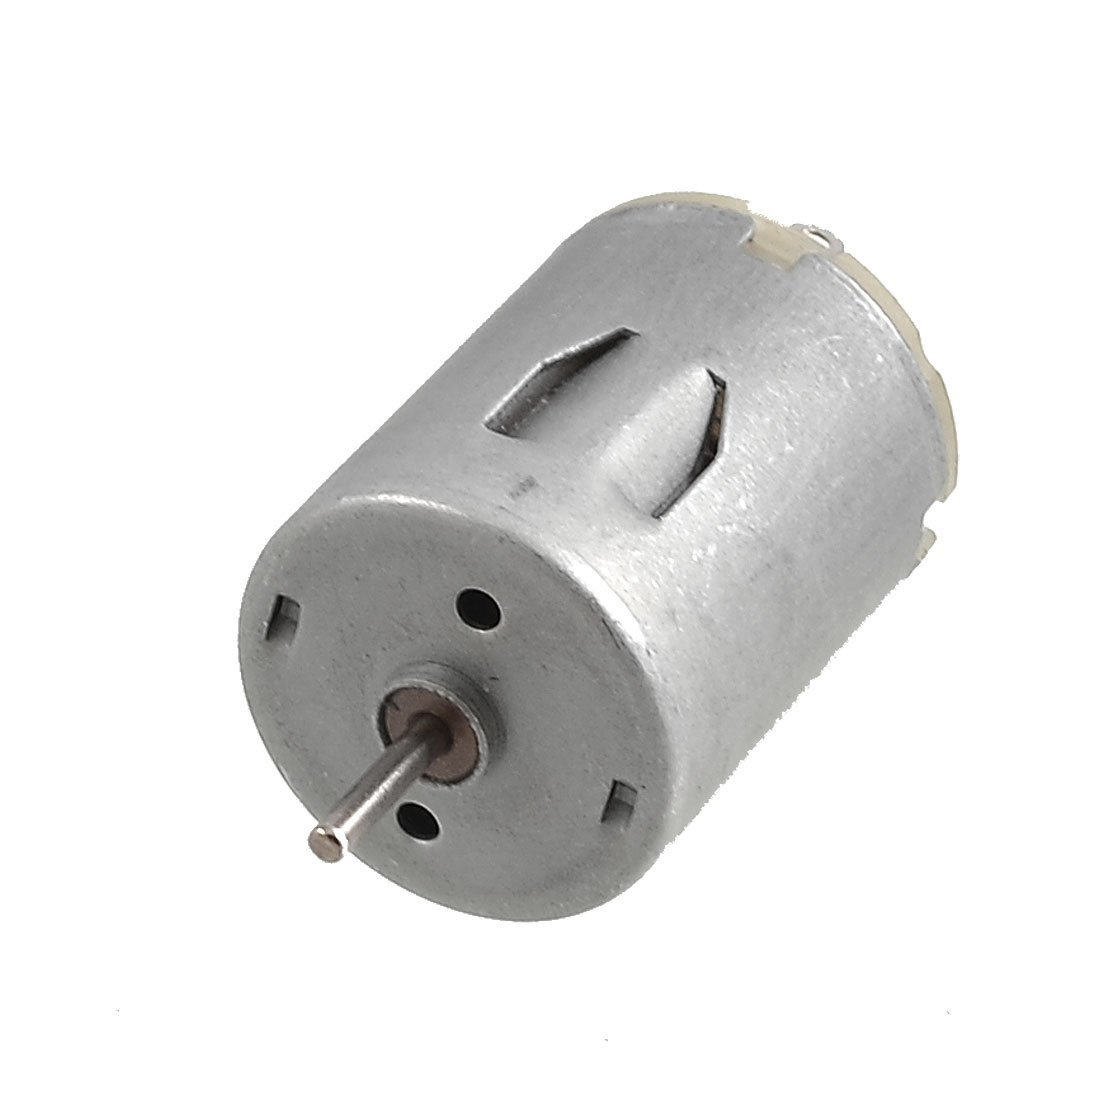 Ltd // Uxcell a12080300ux0068 Uxcell DC 4.5V 10000RPM 0.14A Toys Moulding Electric Micro Motor Dragonmarts Co